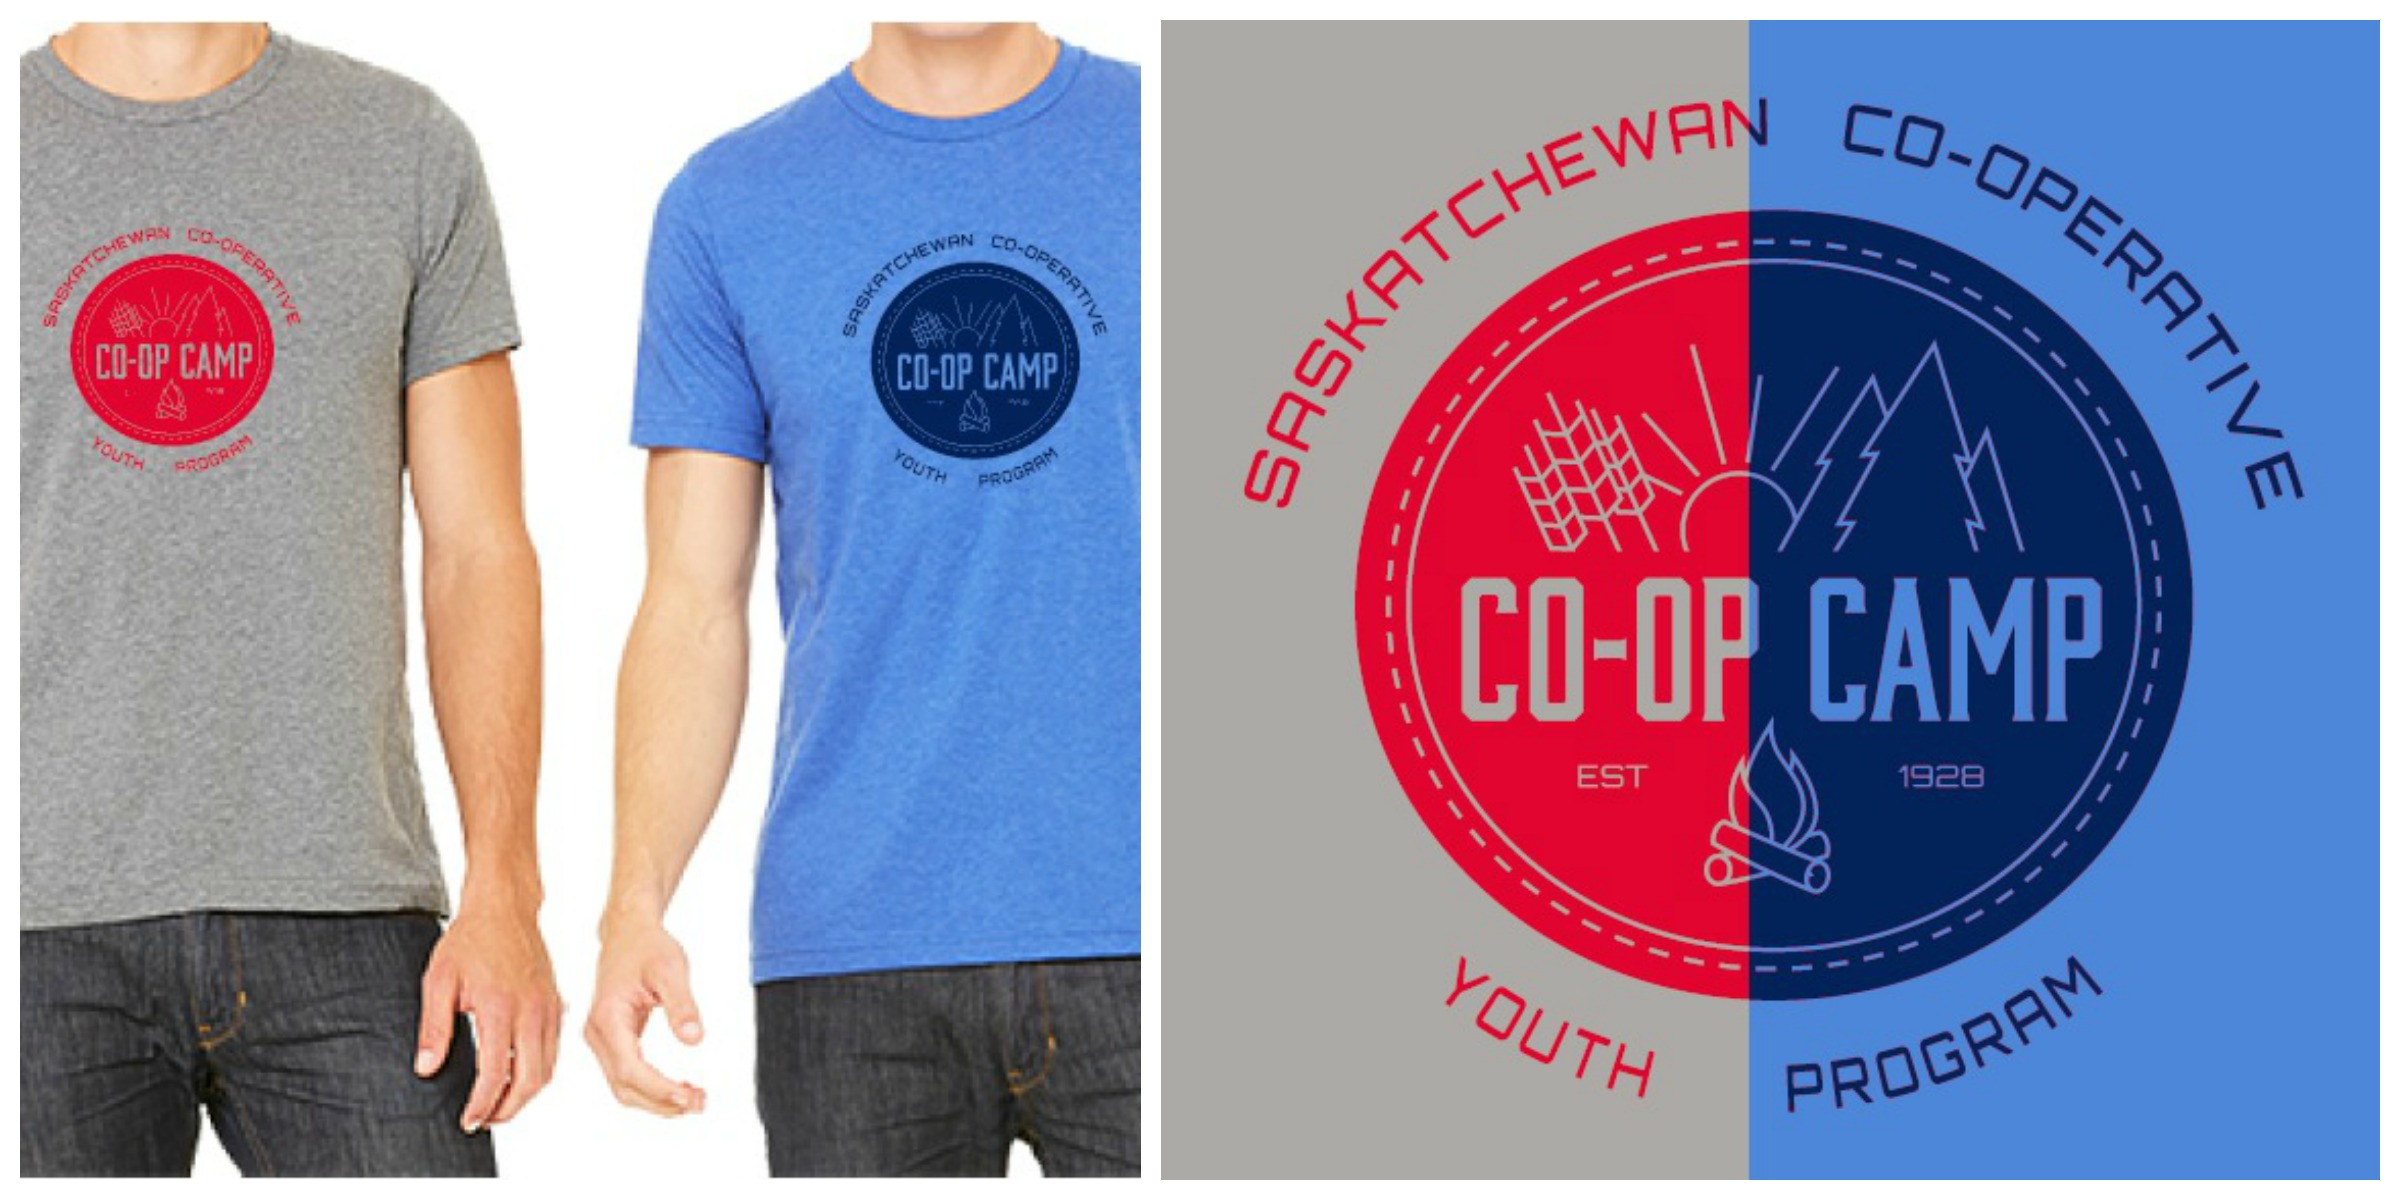 camp shirt and logo collage